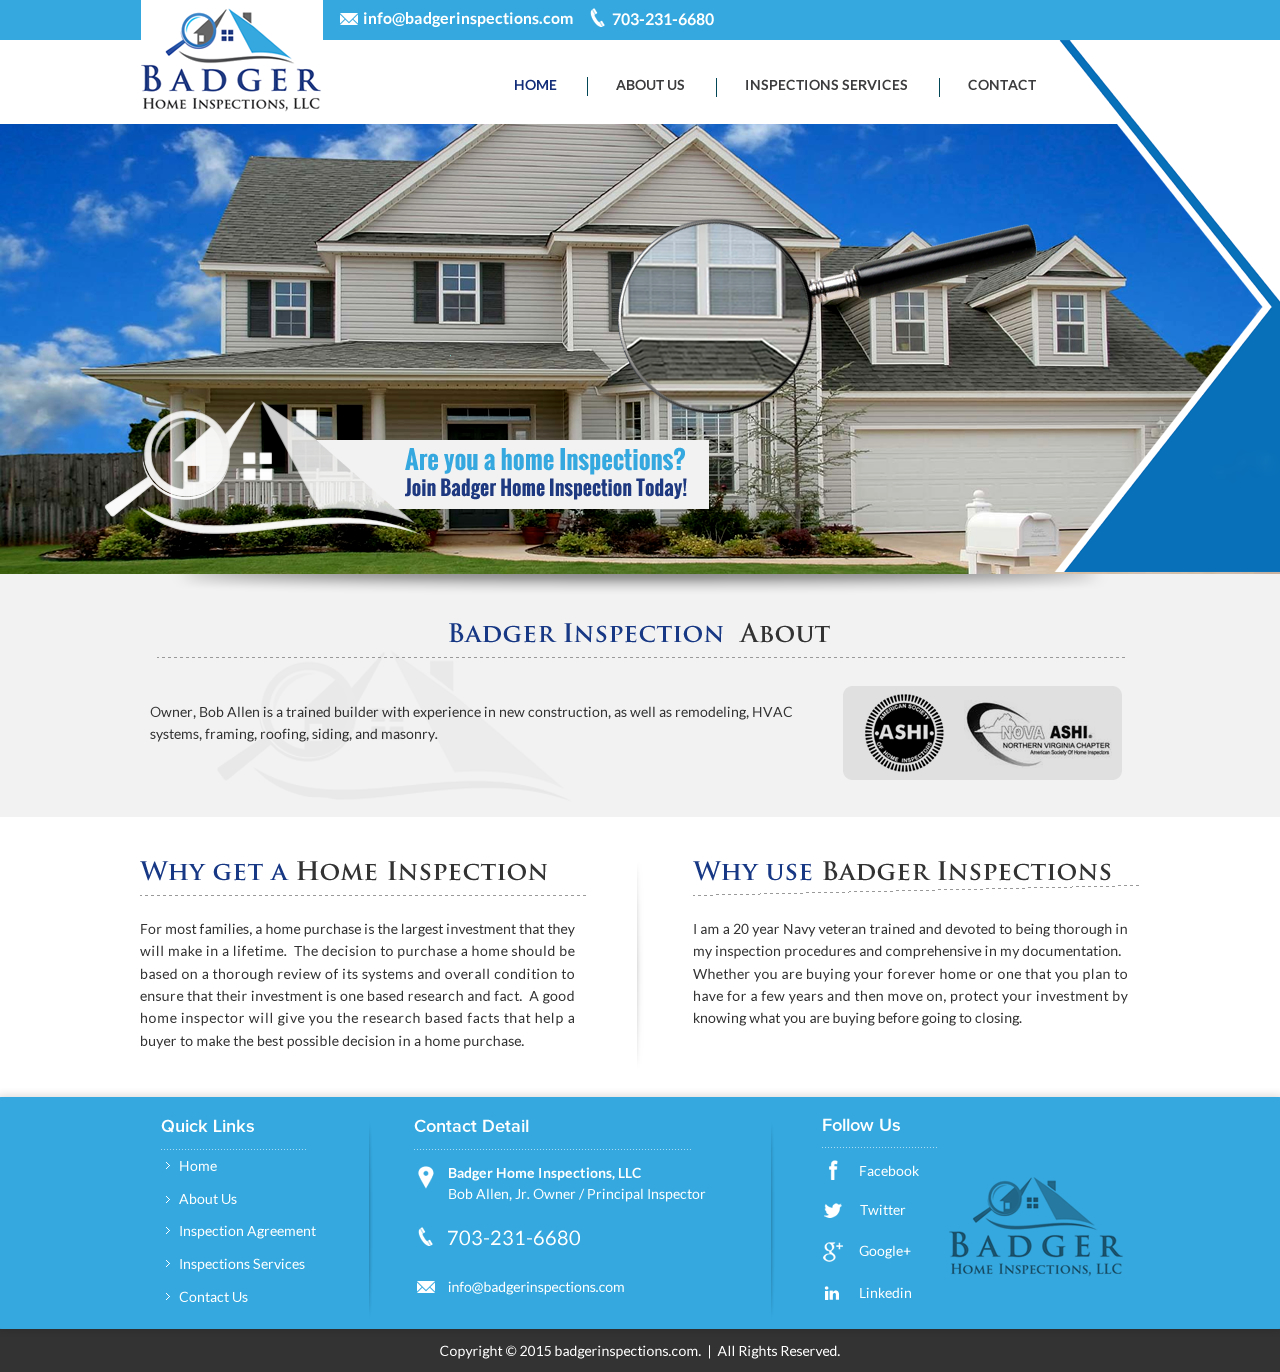 Web Design By Sbss For Badger Home Inspections, LLC. | Design: #6553339